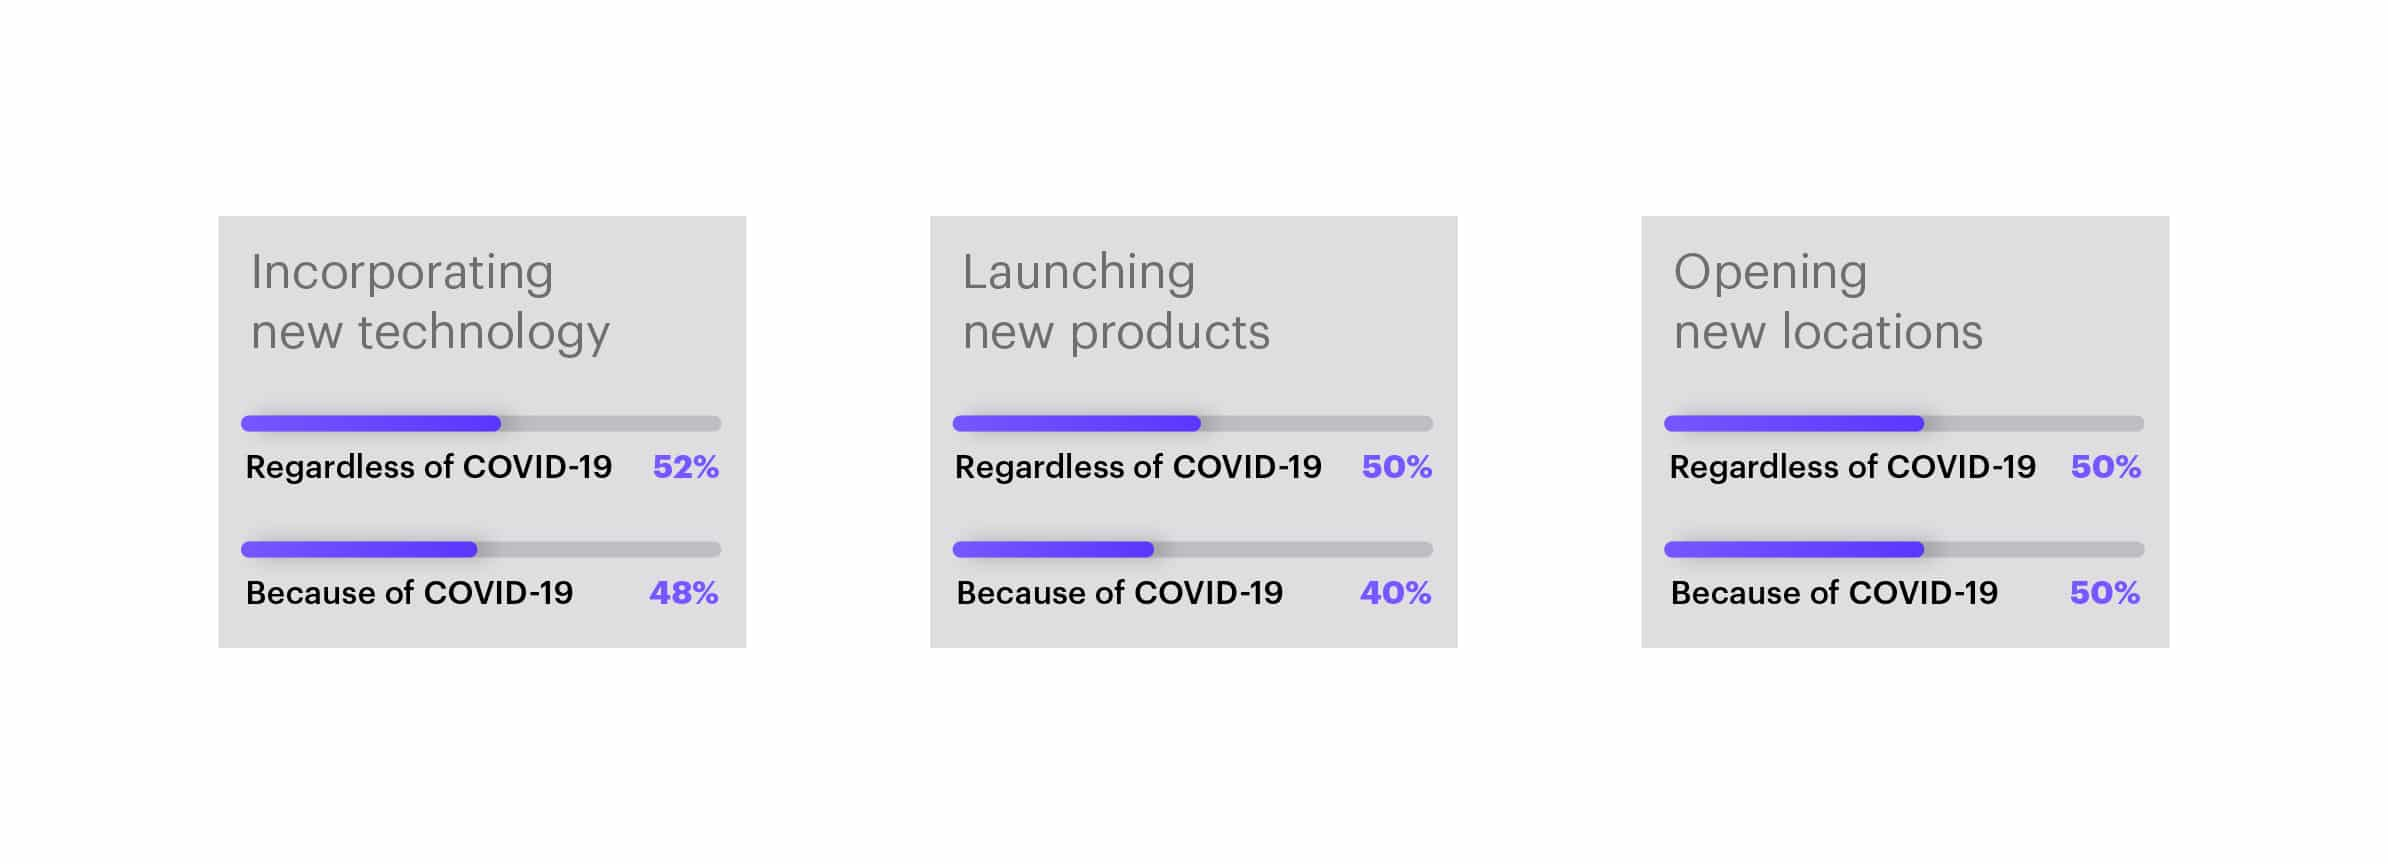 "Incorporating new technology: 52% said ""Regardless of COVID-19""and 48% said ""Because of COVID-19"". Launching new products: 50% said ""Regardless of COVID-19"" and 40% said ""Because of COVID-19"". Opening new locations: 50$ said ""Regardless of COVID-19"" and 50% said ""Because of COVID-19."""